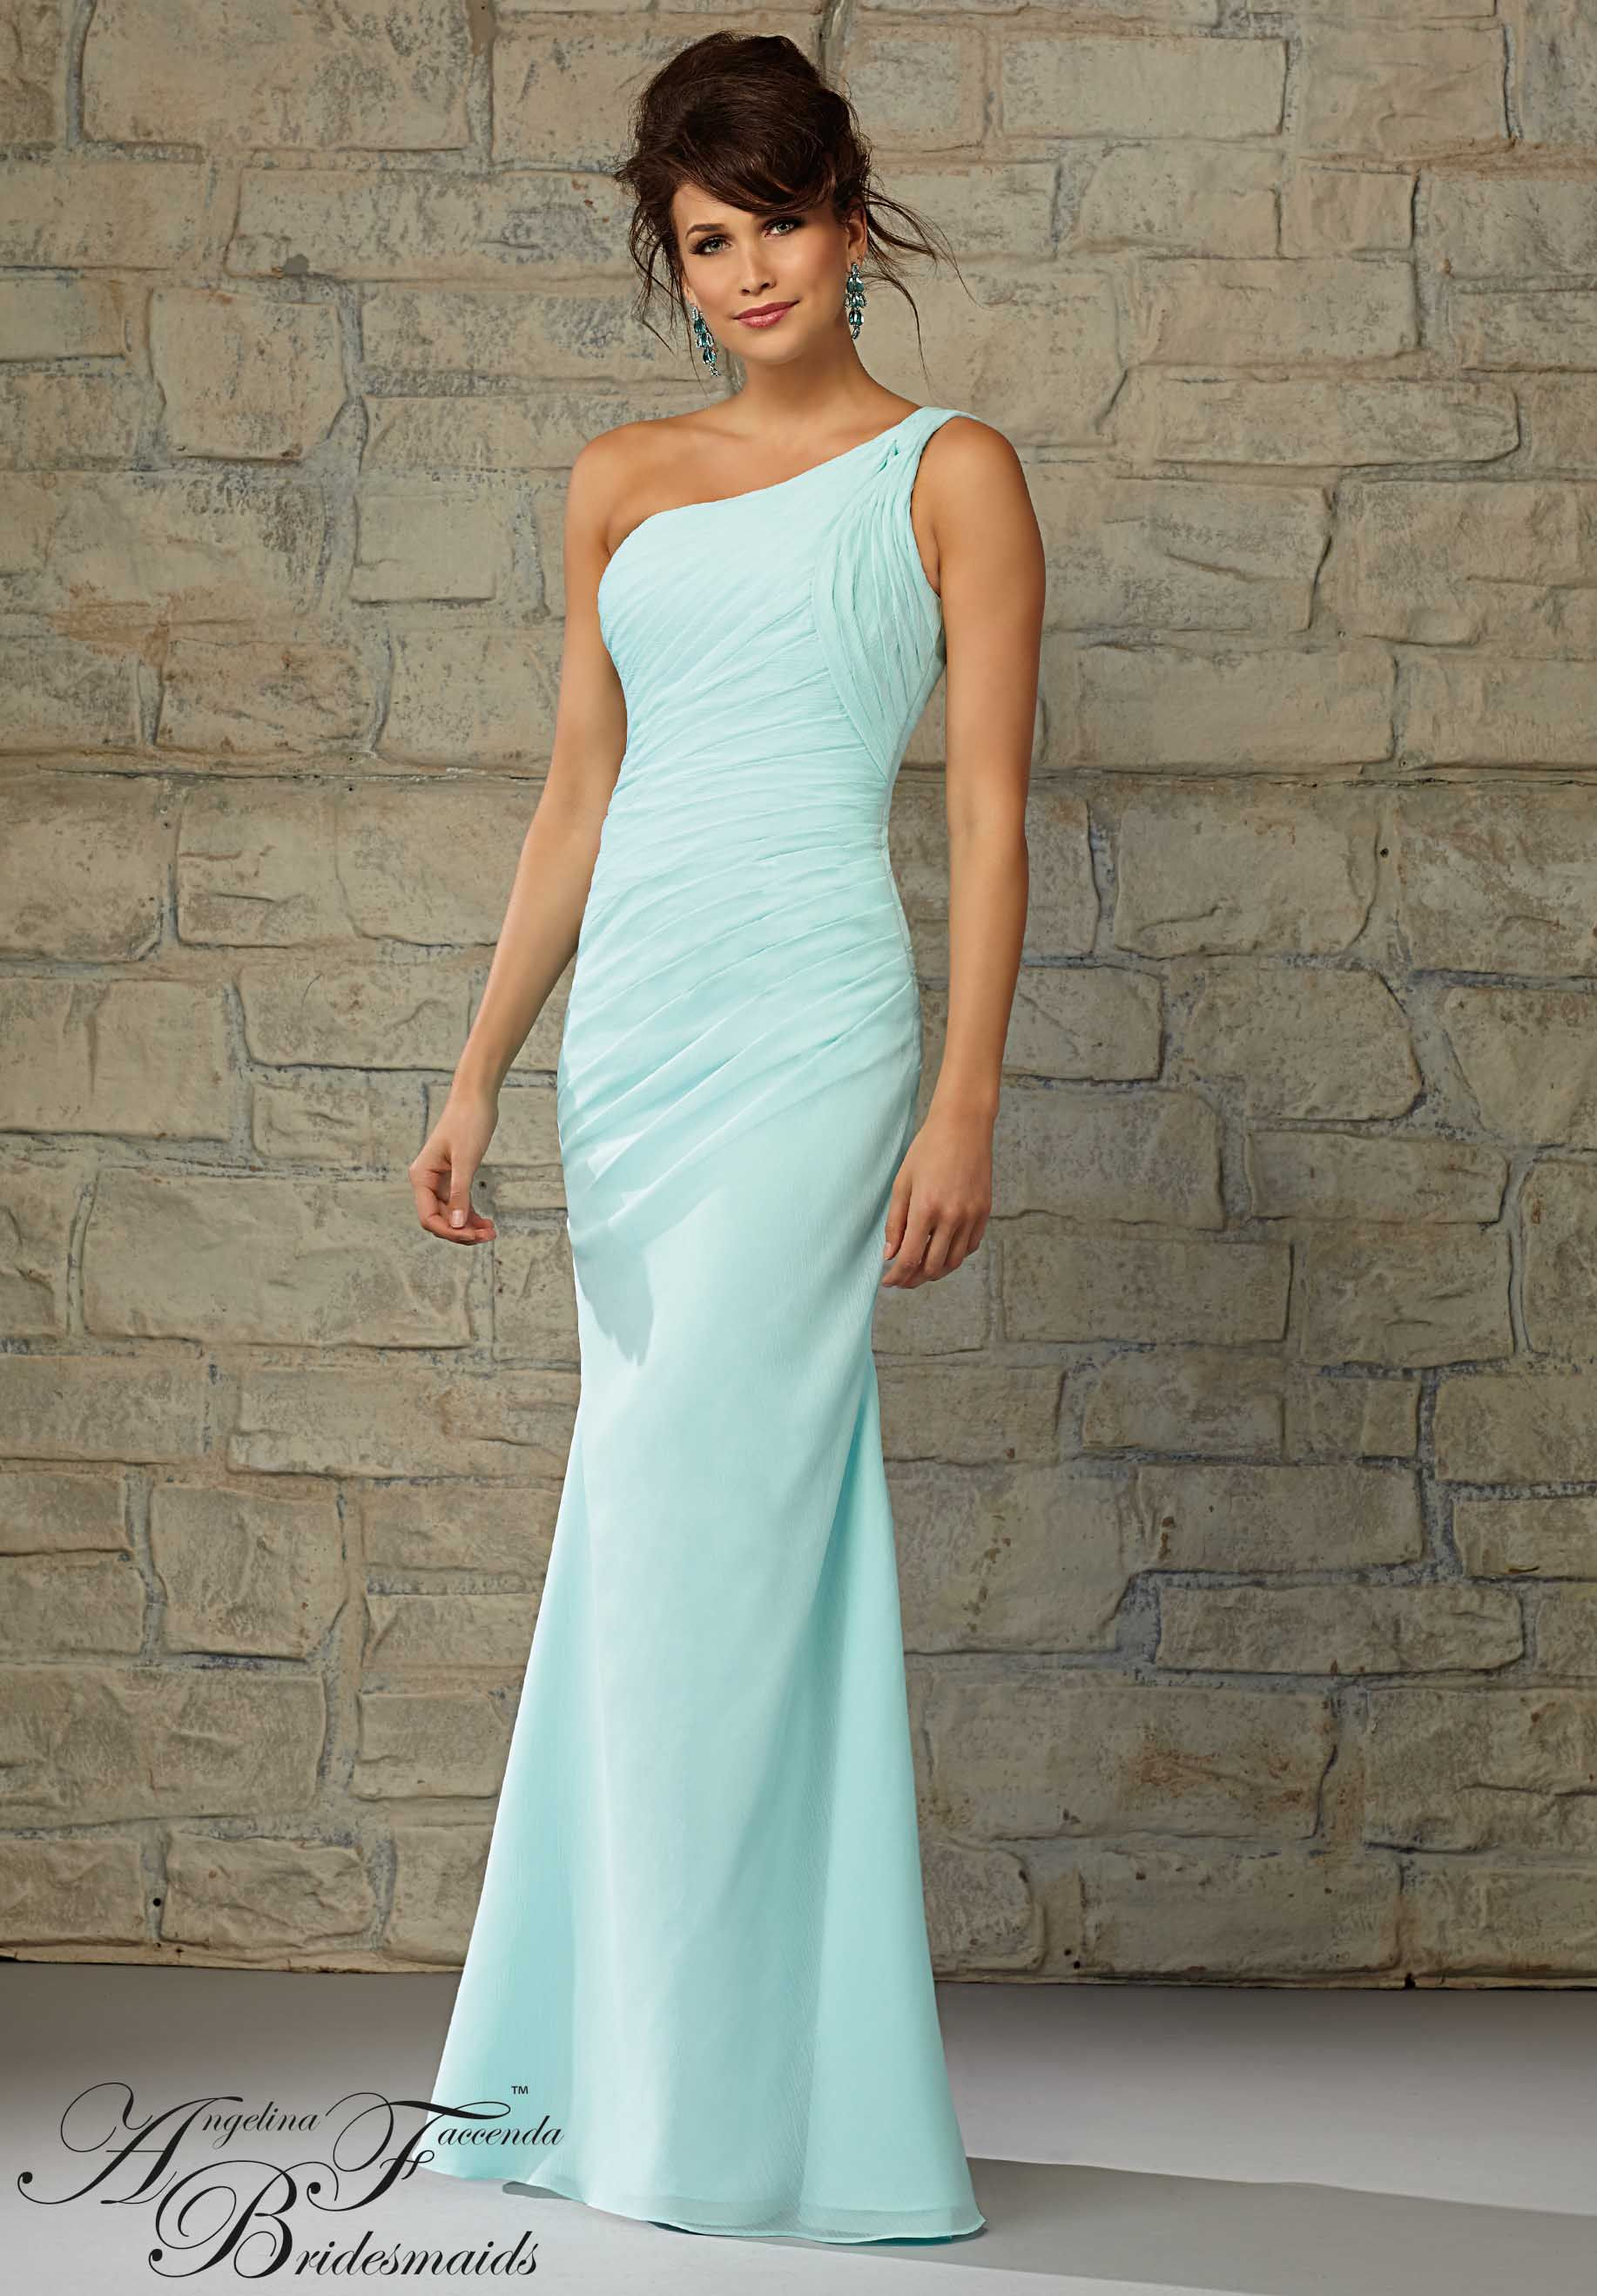 Bridesmaids Dresses by Angelina Feccenda Luxe Chiffon Available in all Angelina Faccenda Bridemaids Luxe Chiffon colors